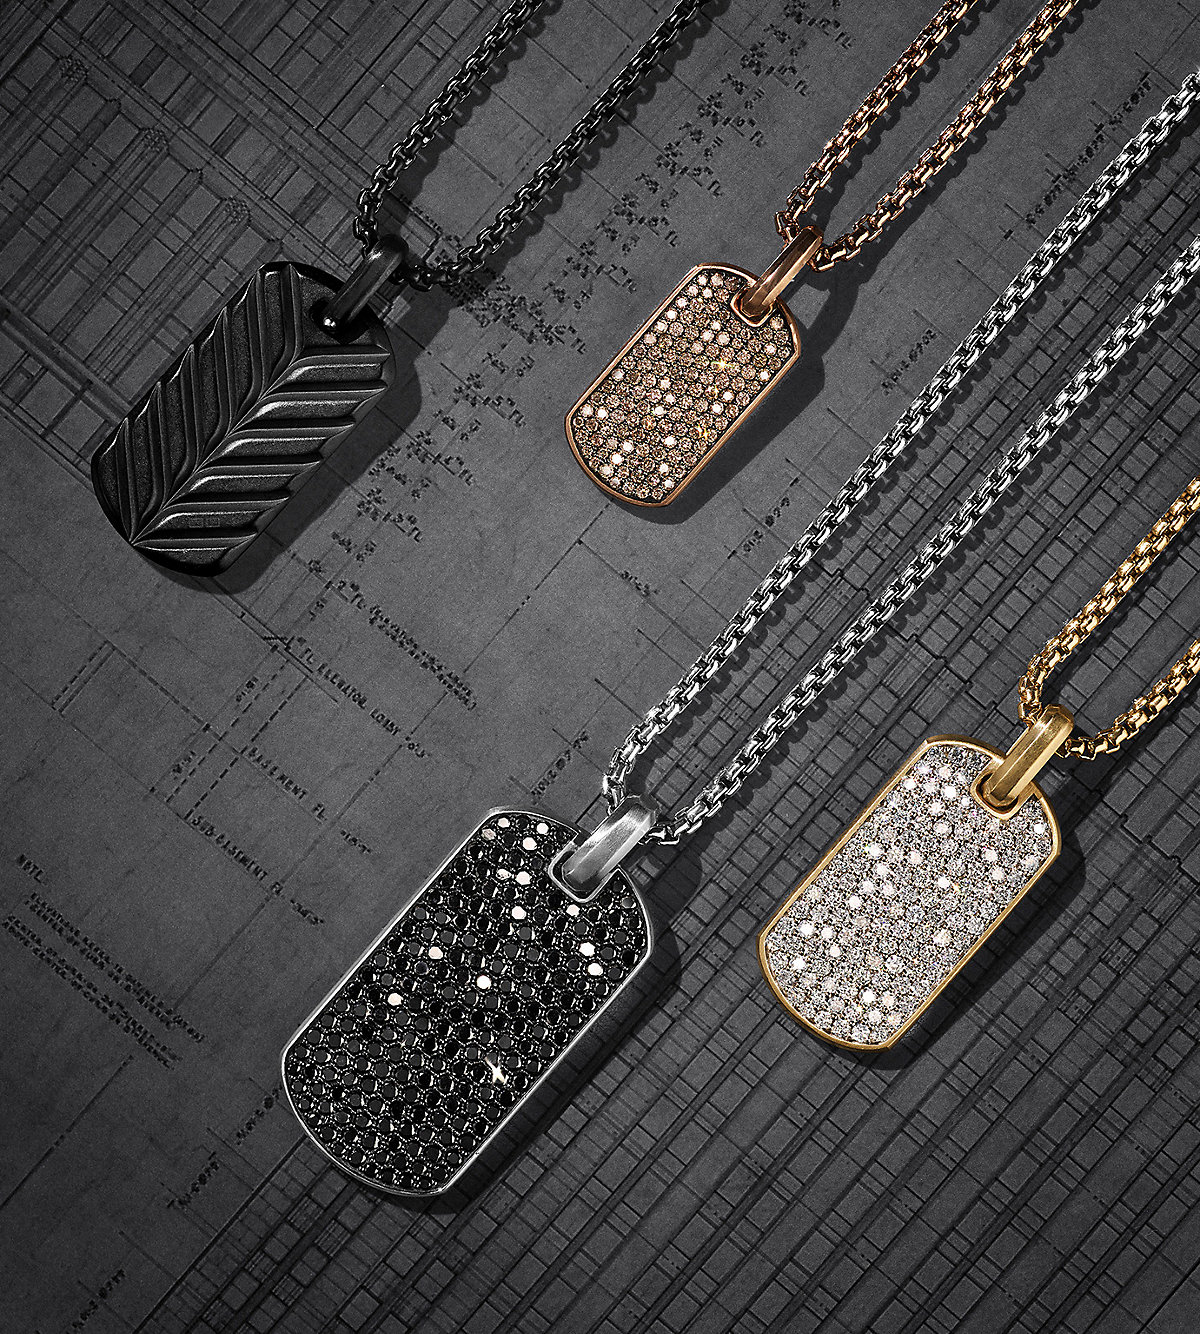 A color photo shows four tags and box chains lying diagonally on a dark grey architectural rendering in a diagonal row. The jewelry is crafted of black titanium, blackened stainless steel, 18K rose or yellow gold, or sterling silver with or without cognac, black or white diamonds.